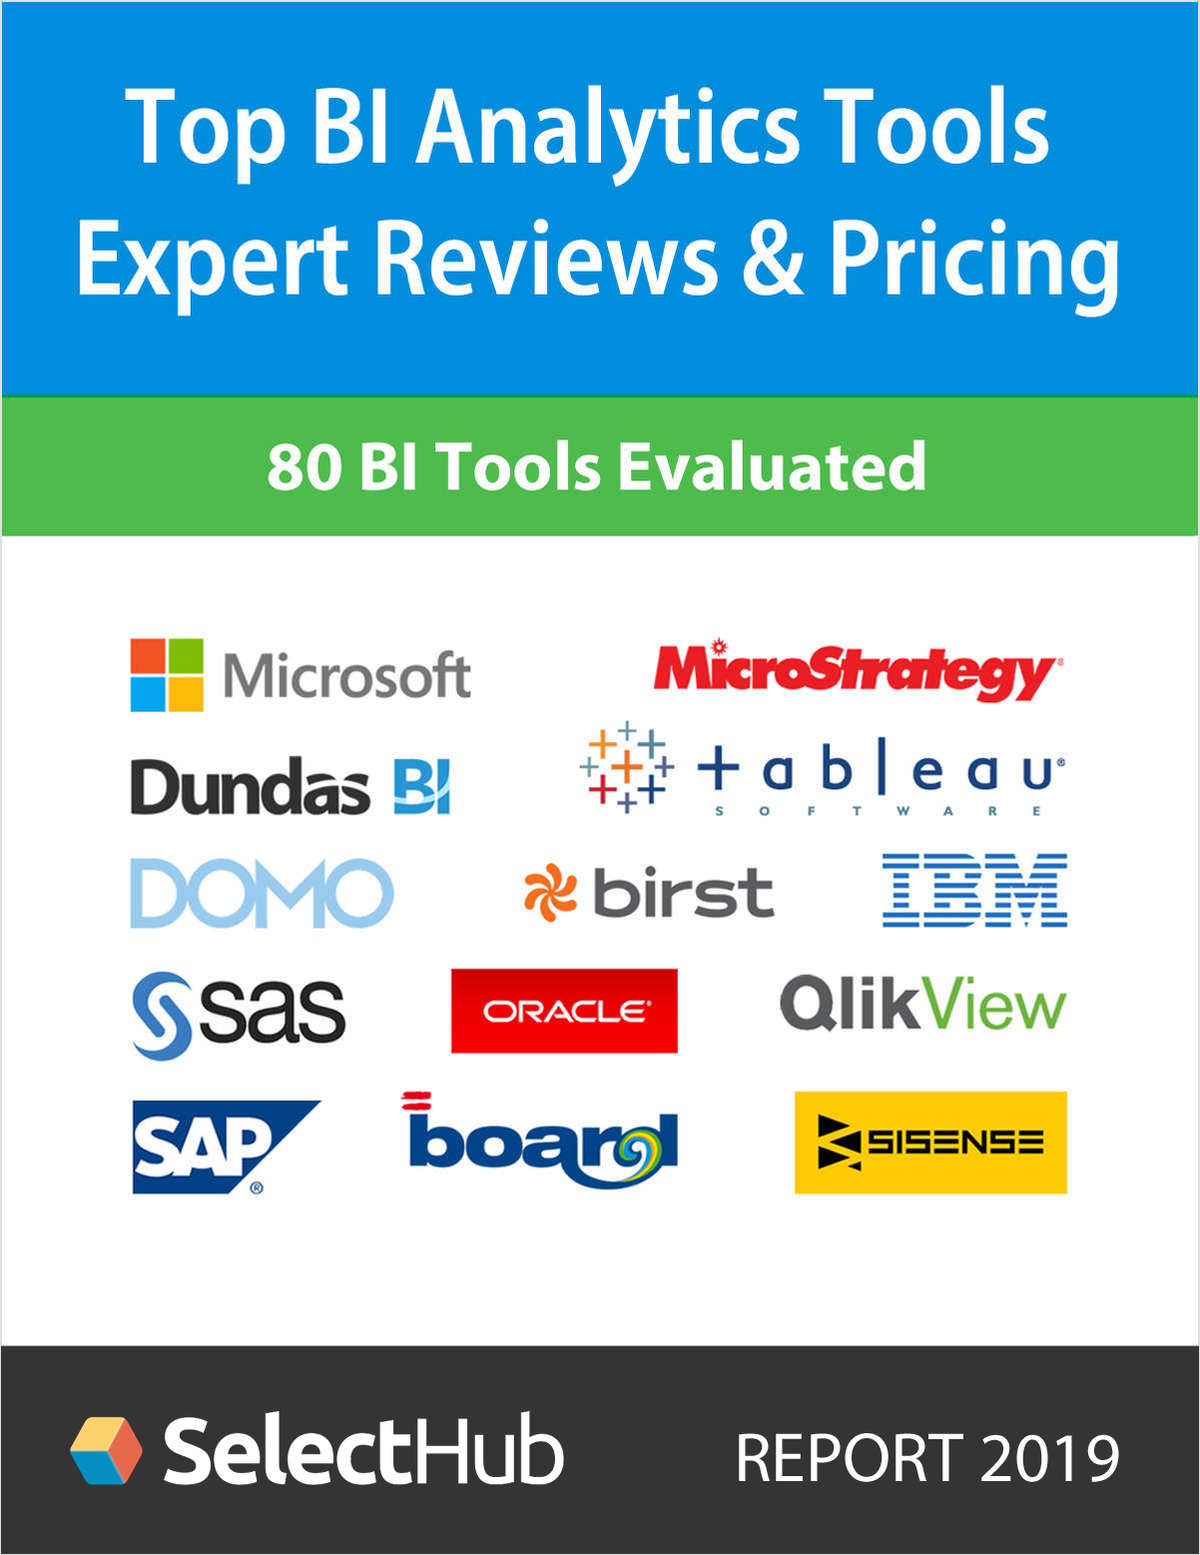 Top bi analytics tools 2018 expert reviews and pricing free top bi analytics tools 2018 expert reviews and pricing free selecthub report fandeluxe Gallery